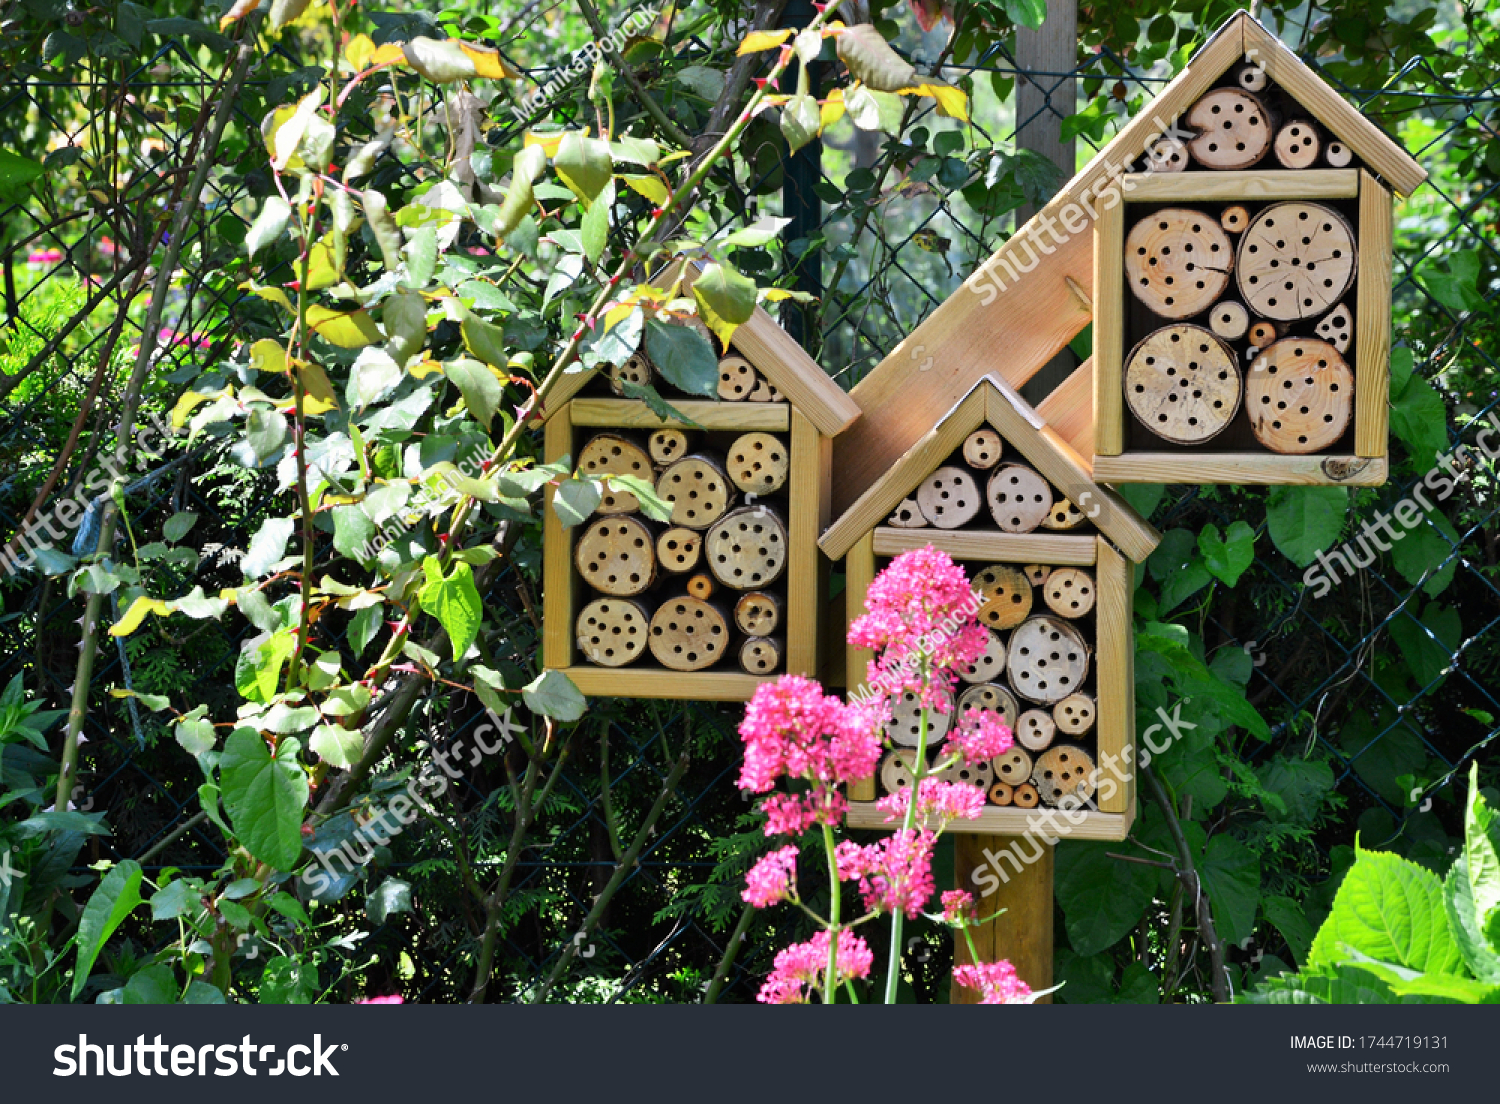 stock-photo-a-garden-with-insect-hotel-1